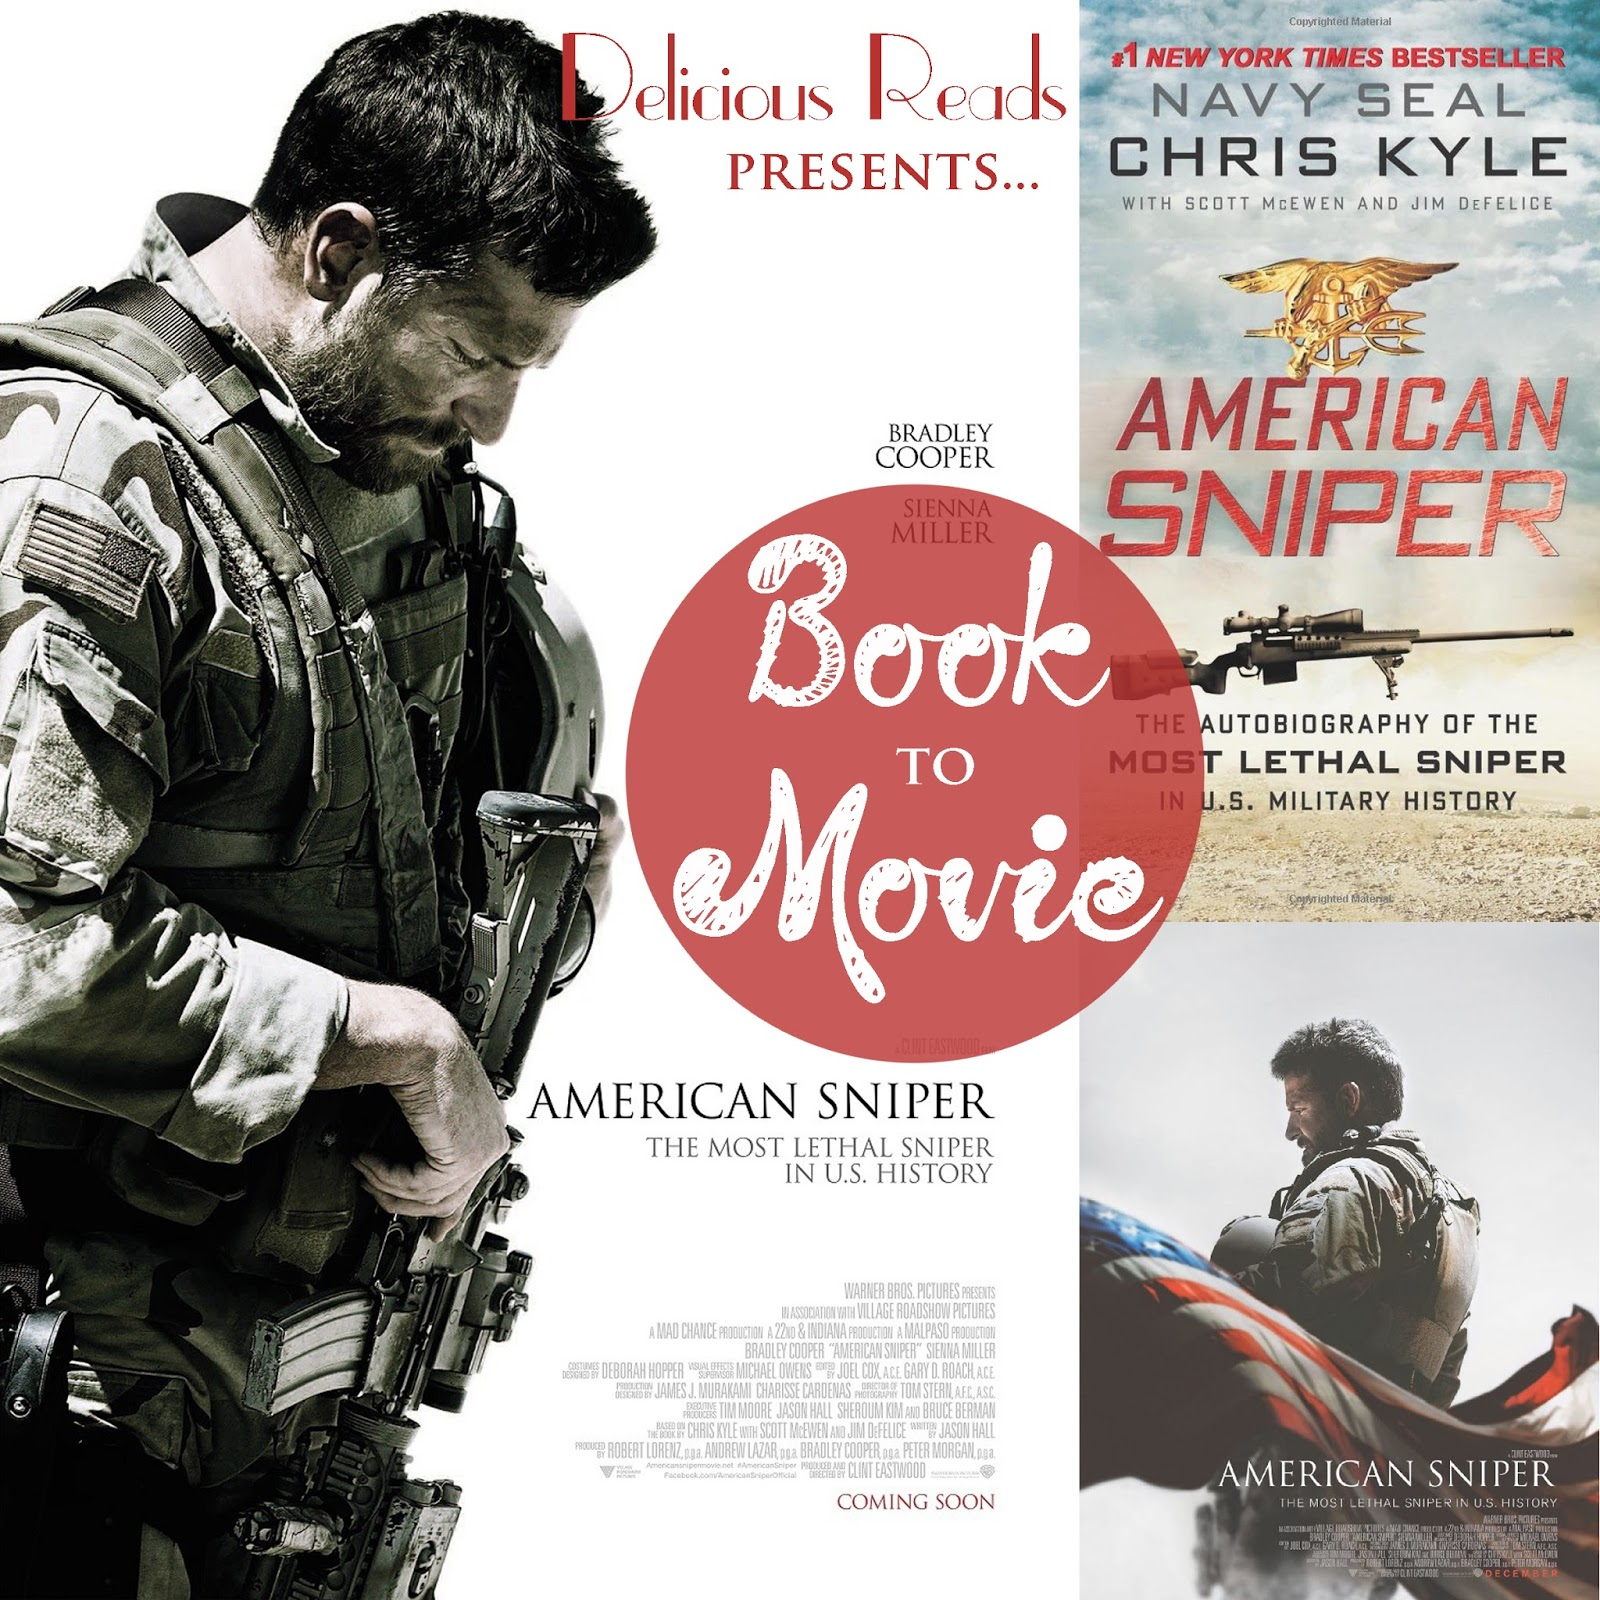 delicious reads american sniper book to movie